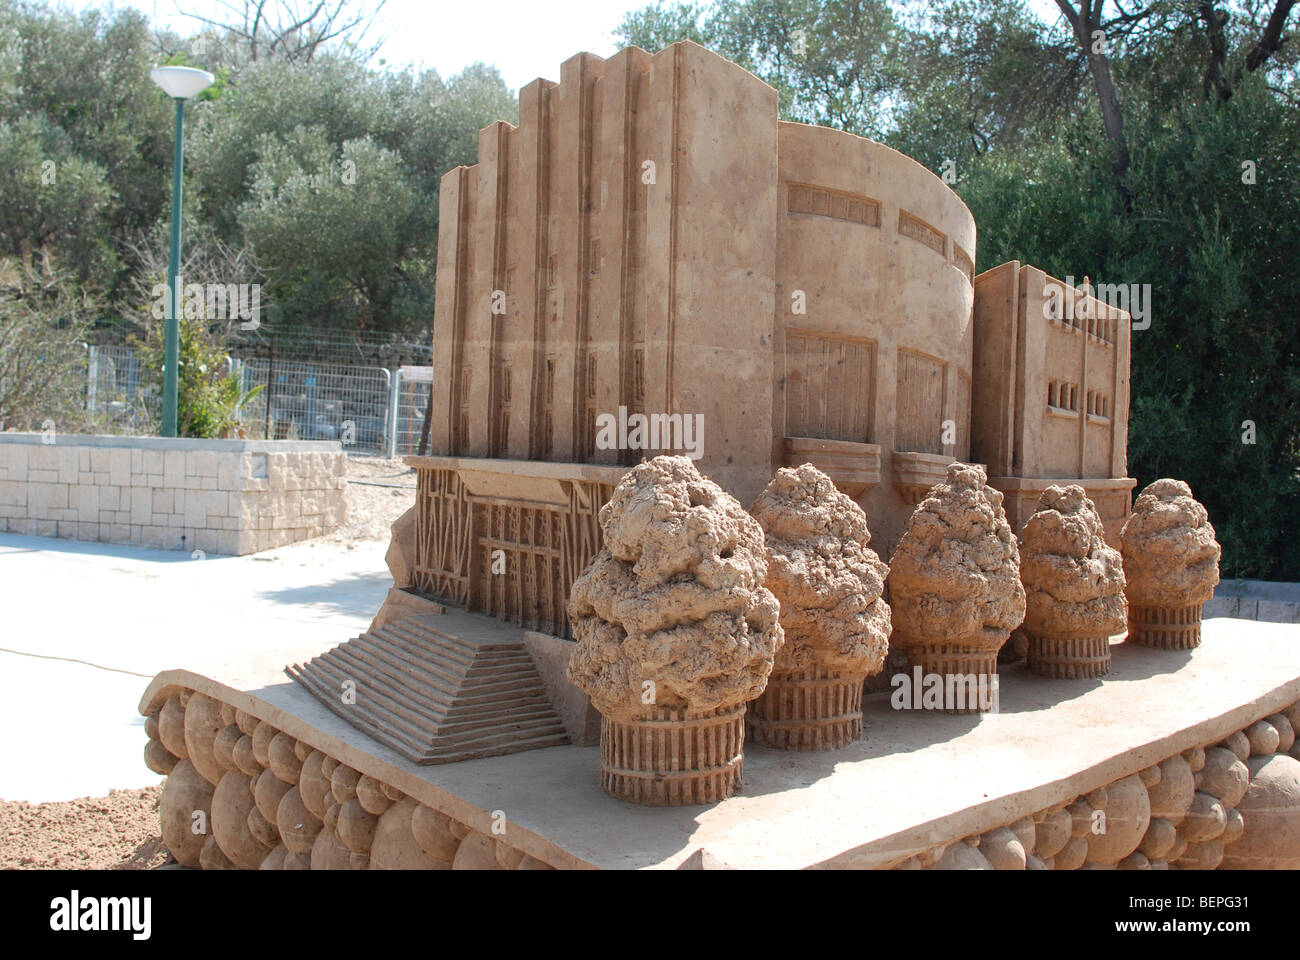 Tel Aviv, Centennial celebrations, sand sculptures of famous buildings and landmarks Habima Theatre from 1934 - Stock Image